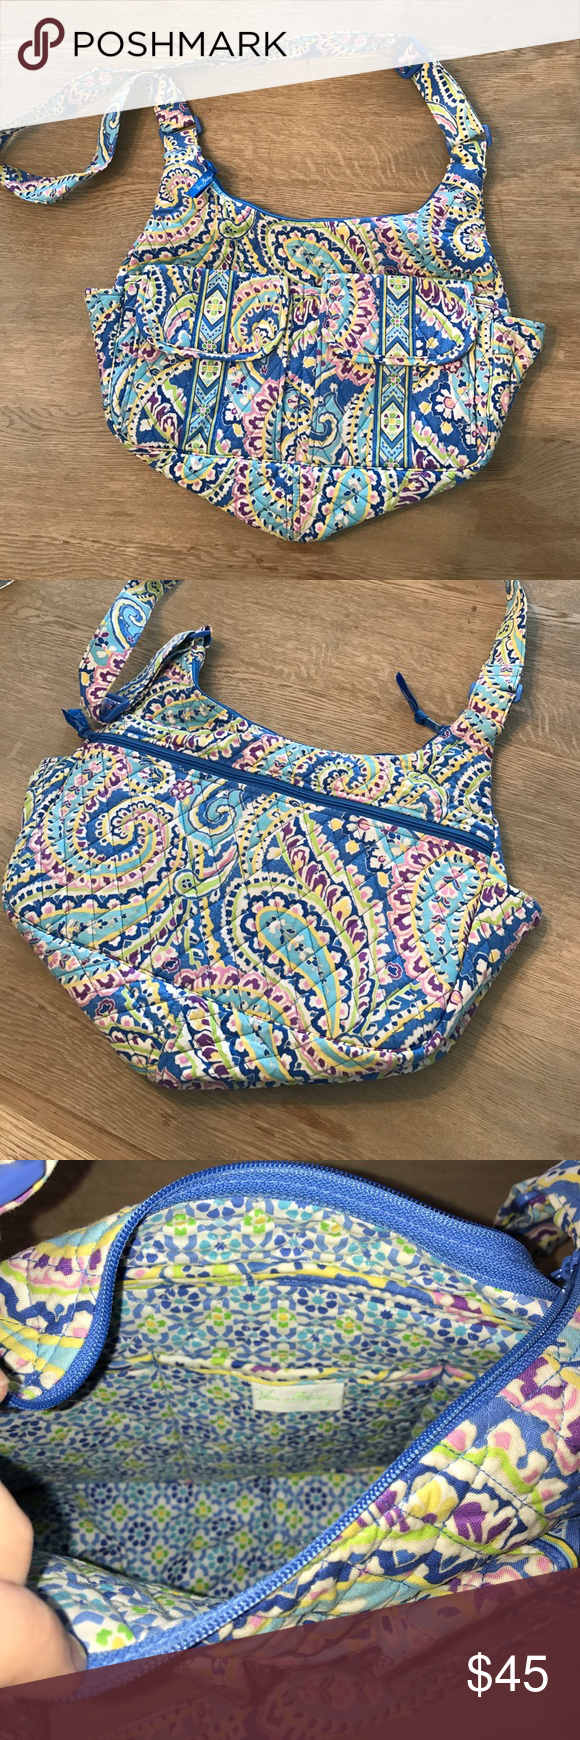 Vera Bradley diaper bag Adorable Vera Bradley diaper bag for sale. Brand new condition. Very cute and practical. Long adjustable strap. Lots of pockets and storage on inside and out. Vera Bradley Bags Baby Bags